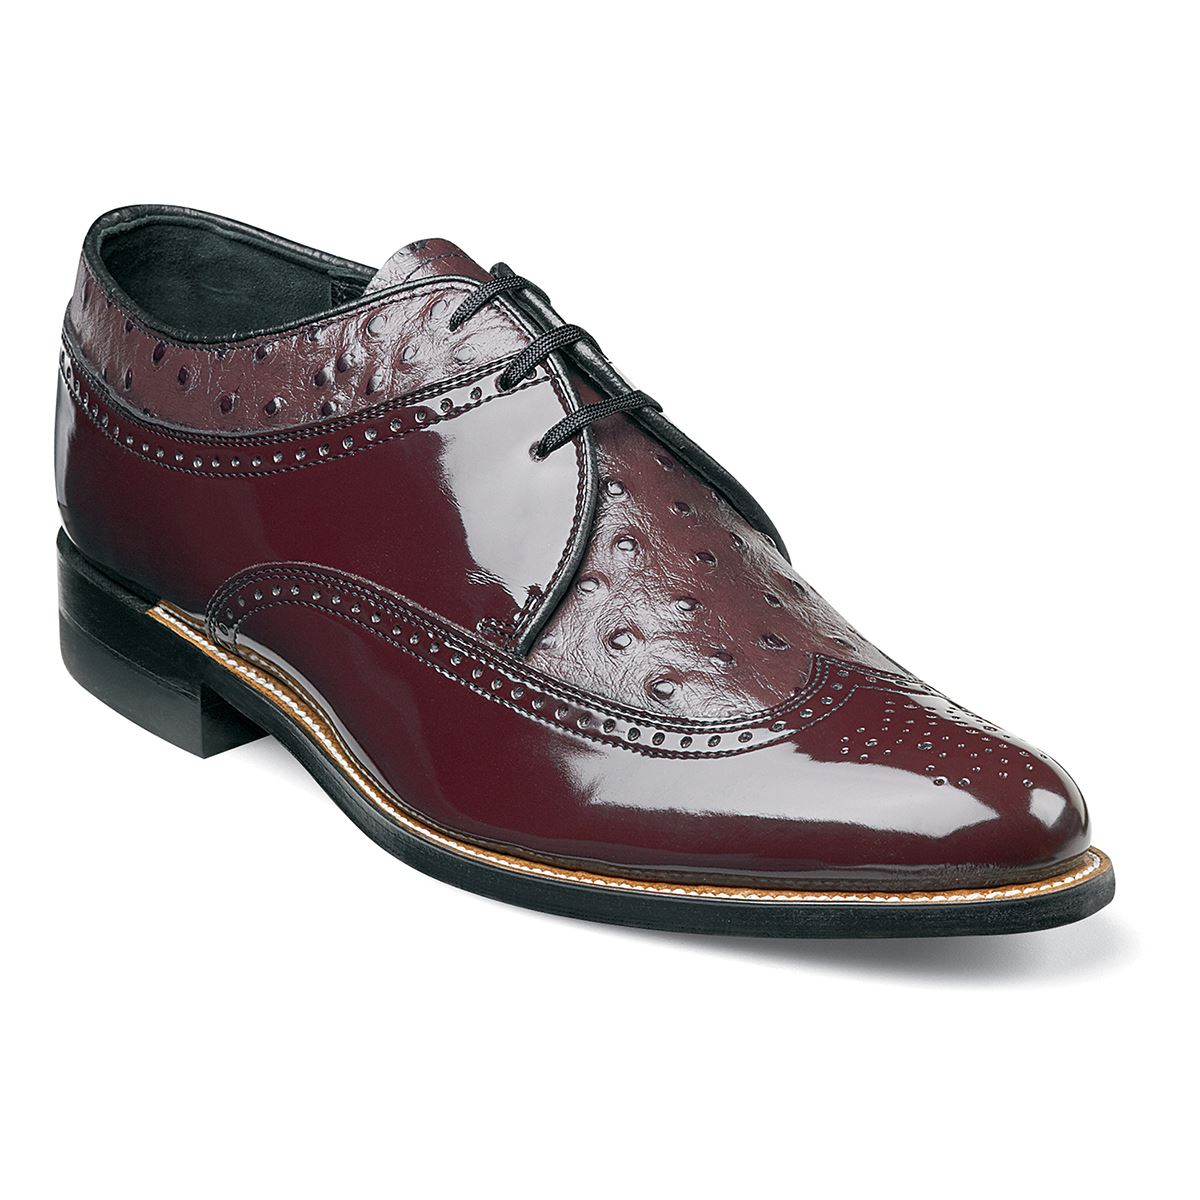 Stacy Adams Mens Shoes